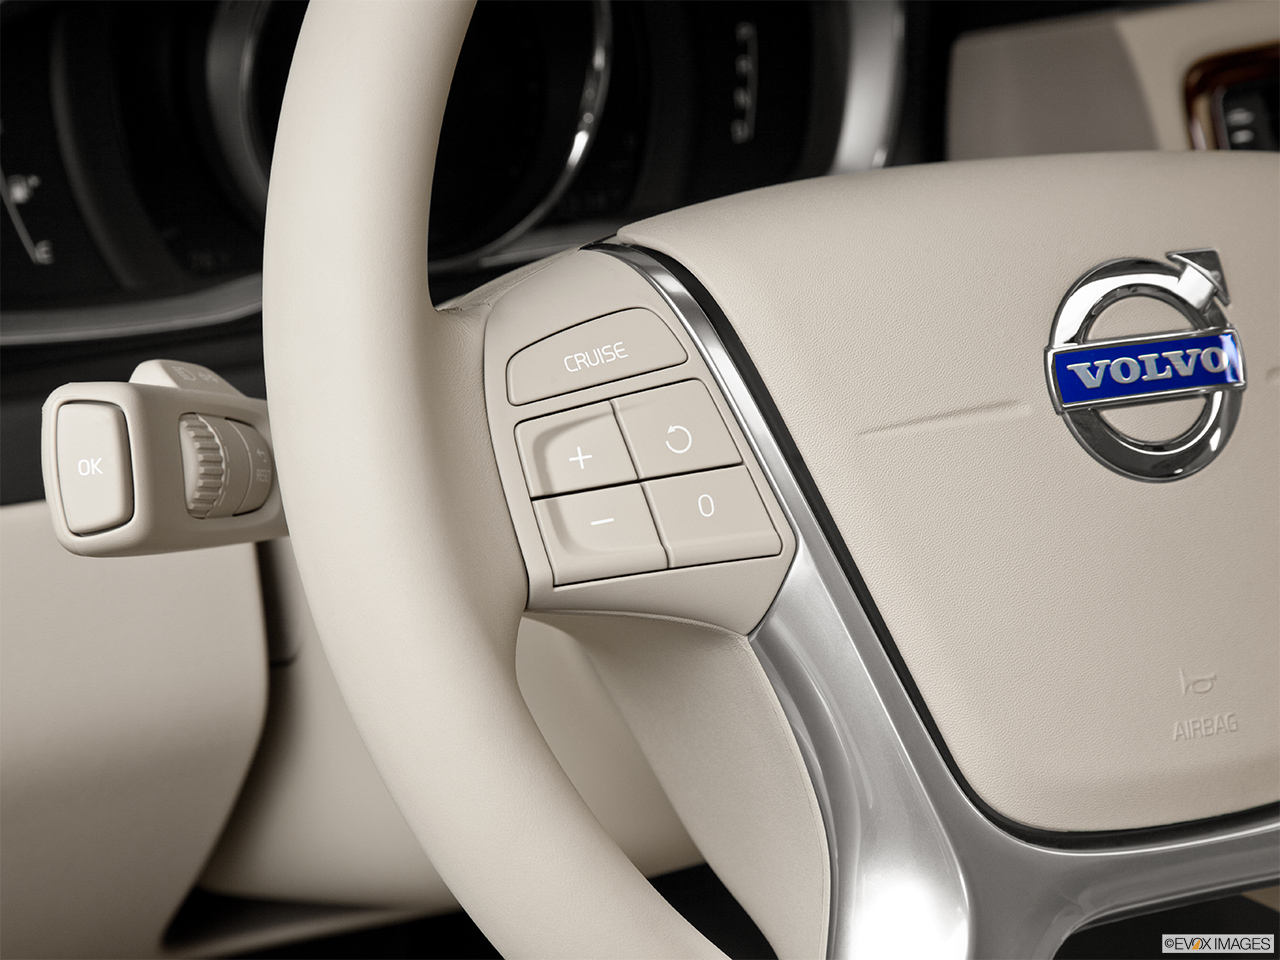 2014 Volvo XC70 3.2 AWD Premier Plus Steering Wheel Controls (Left Side)